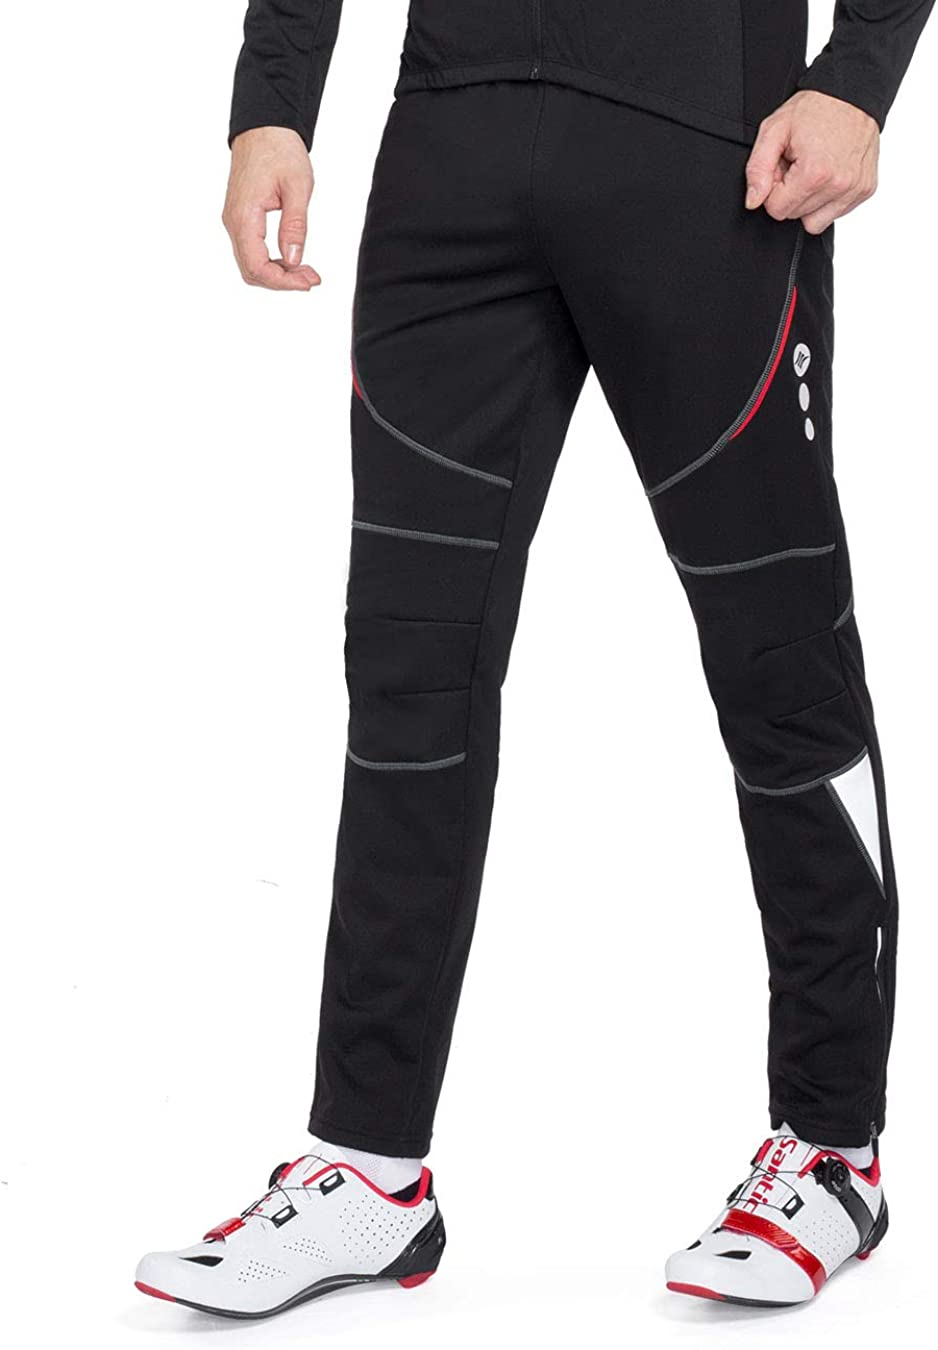 Santic Men's Cycling Pants Fleece Thermal Windproof Winter Outdoor Athletic Pants for Biking Running Hiking : Clothing